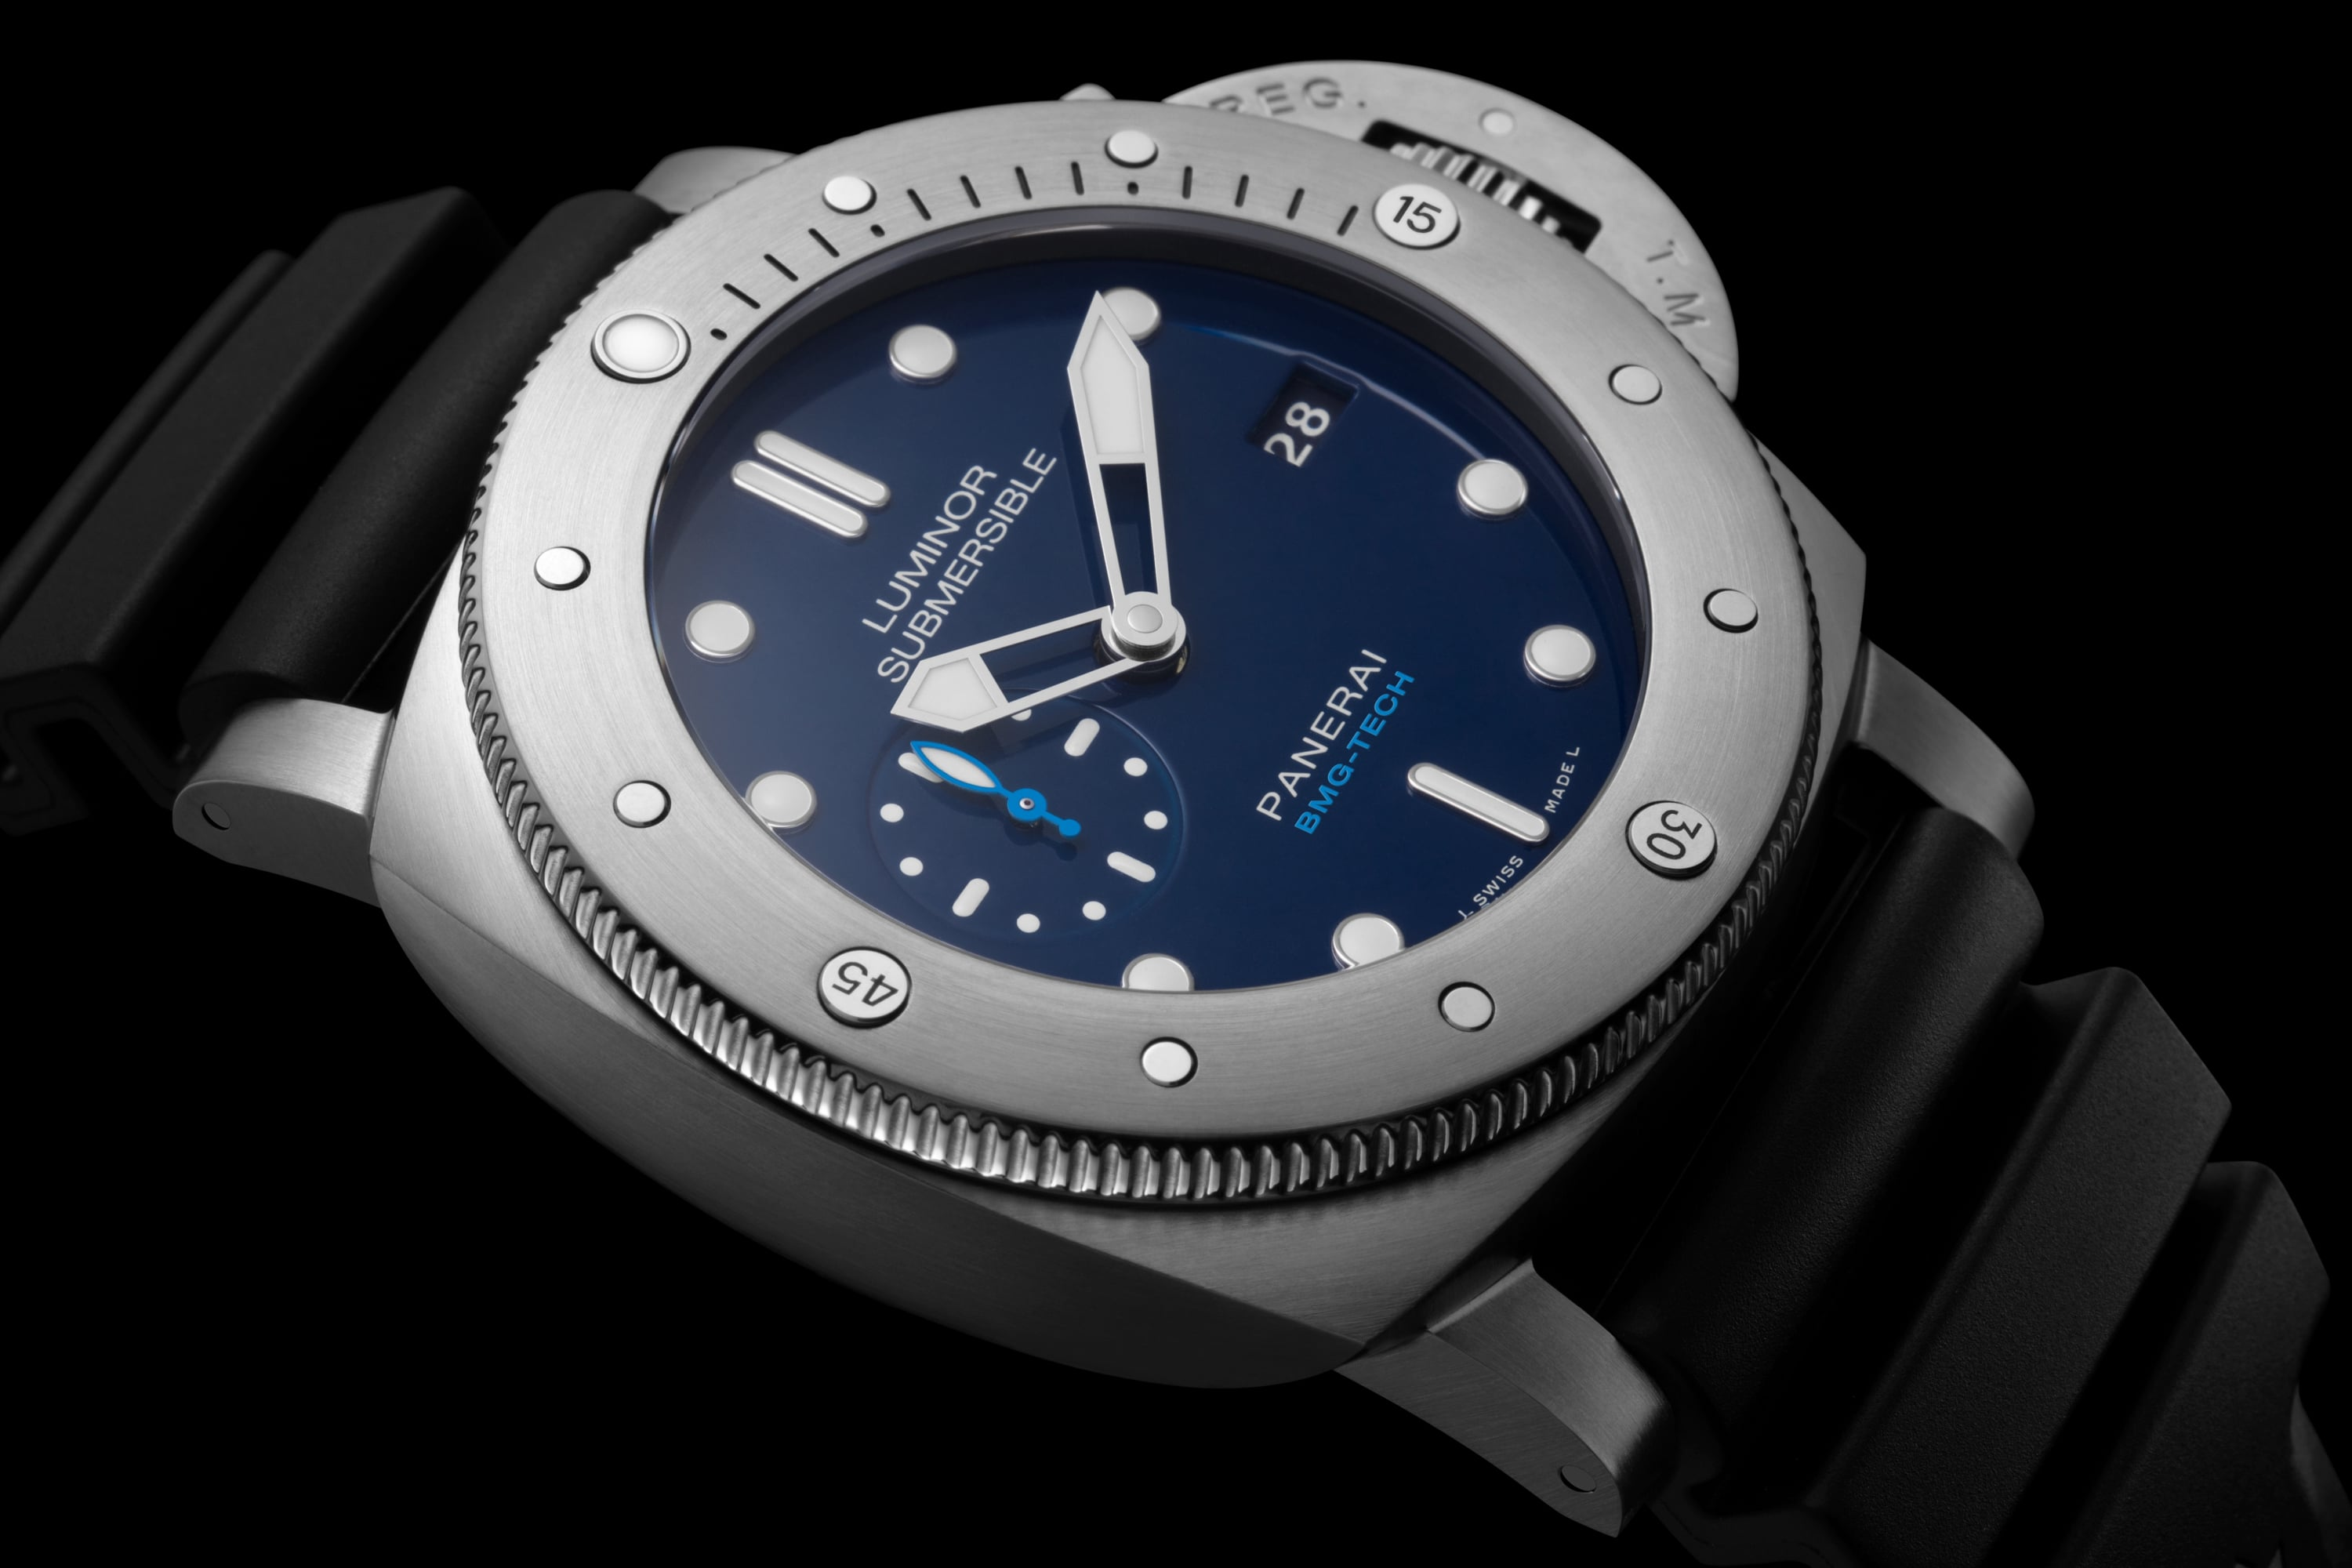 Panerai Submersible BMG Tech